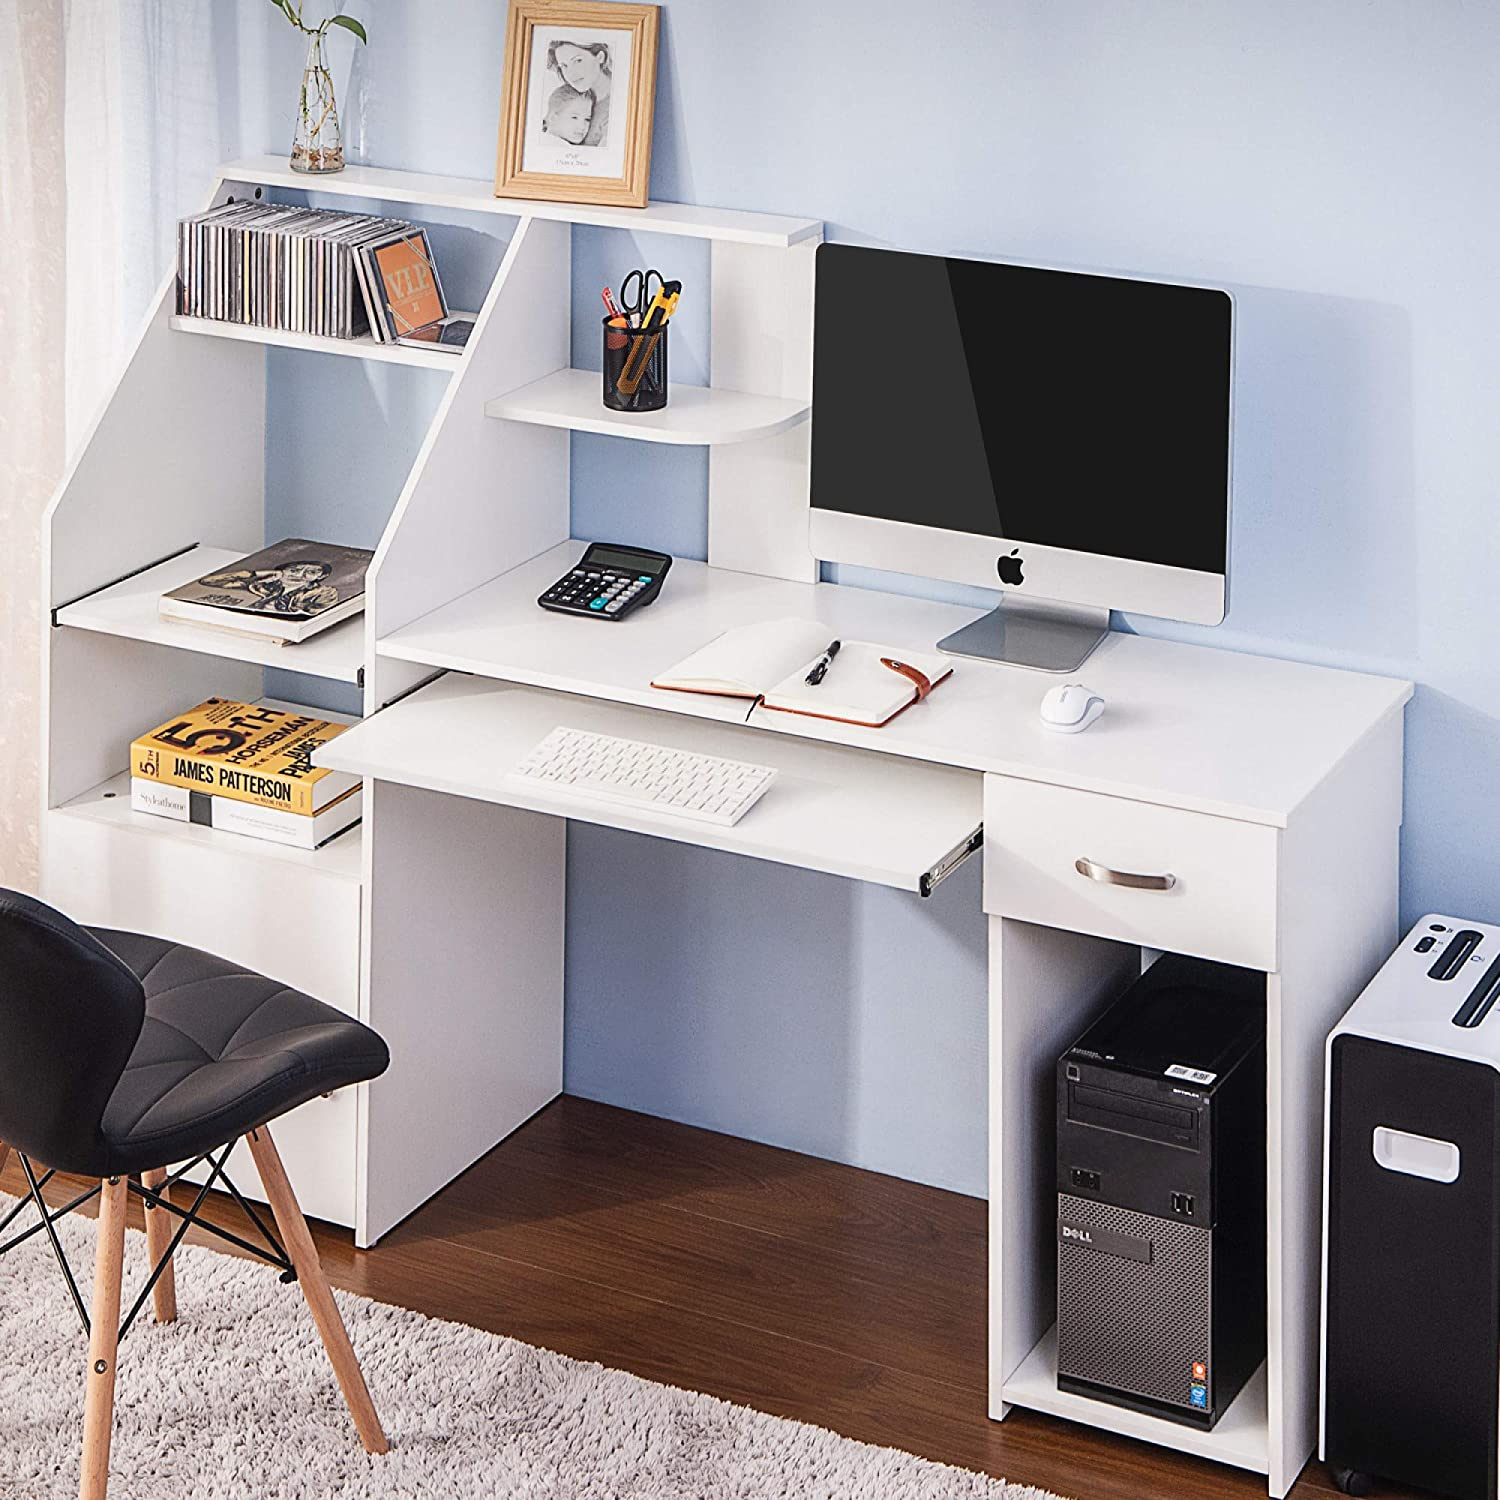 DERCASS Multi-Functions Computer Desk with Cabinet,Home Office Desk Computer Workstation, Study Writing Desk with Storage Drawer & Pull-Out Keyboard Tray